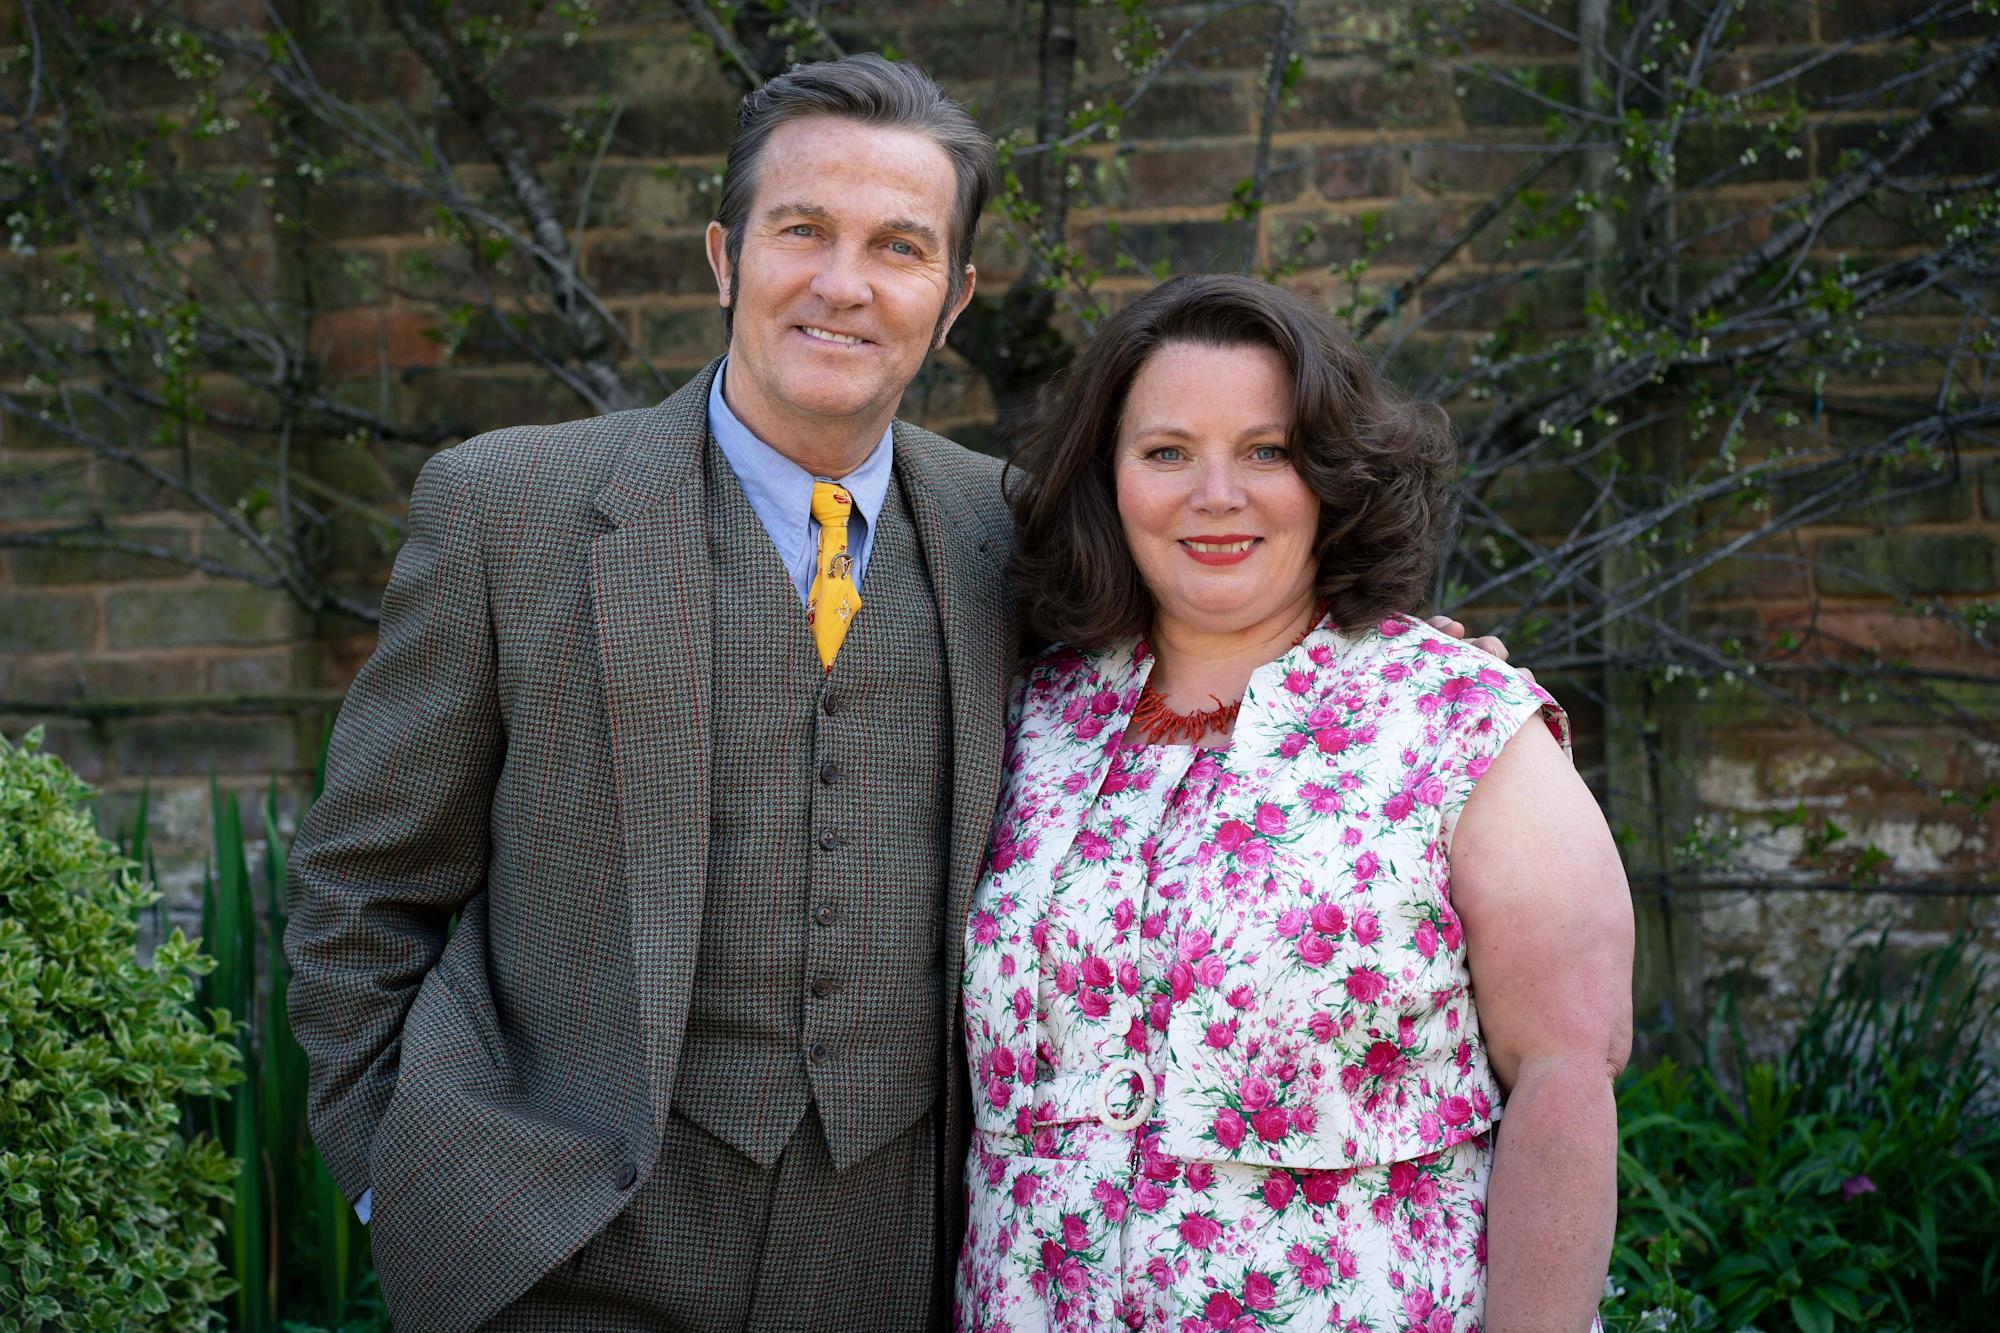 ITV unveils first look at Bradley Walsh and Joanna Scanlan in 'The Larkins'